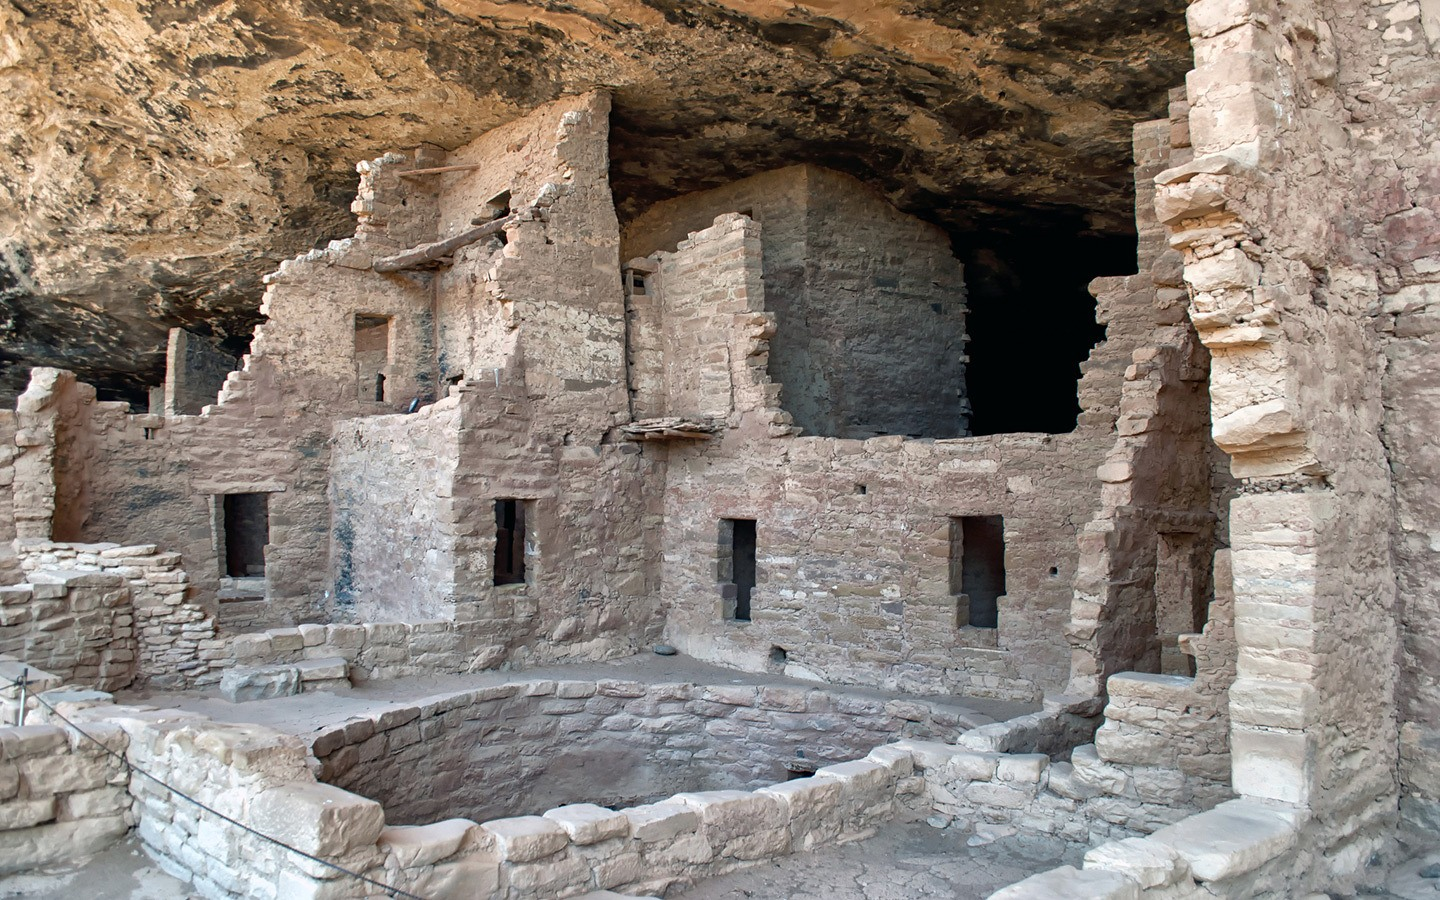 Spruce Tree House at Mesa Verde National Park, Colorado